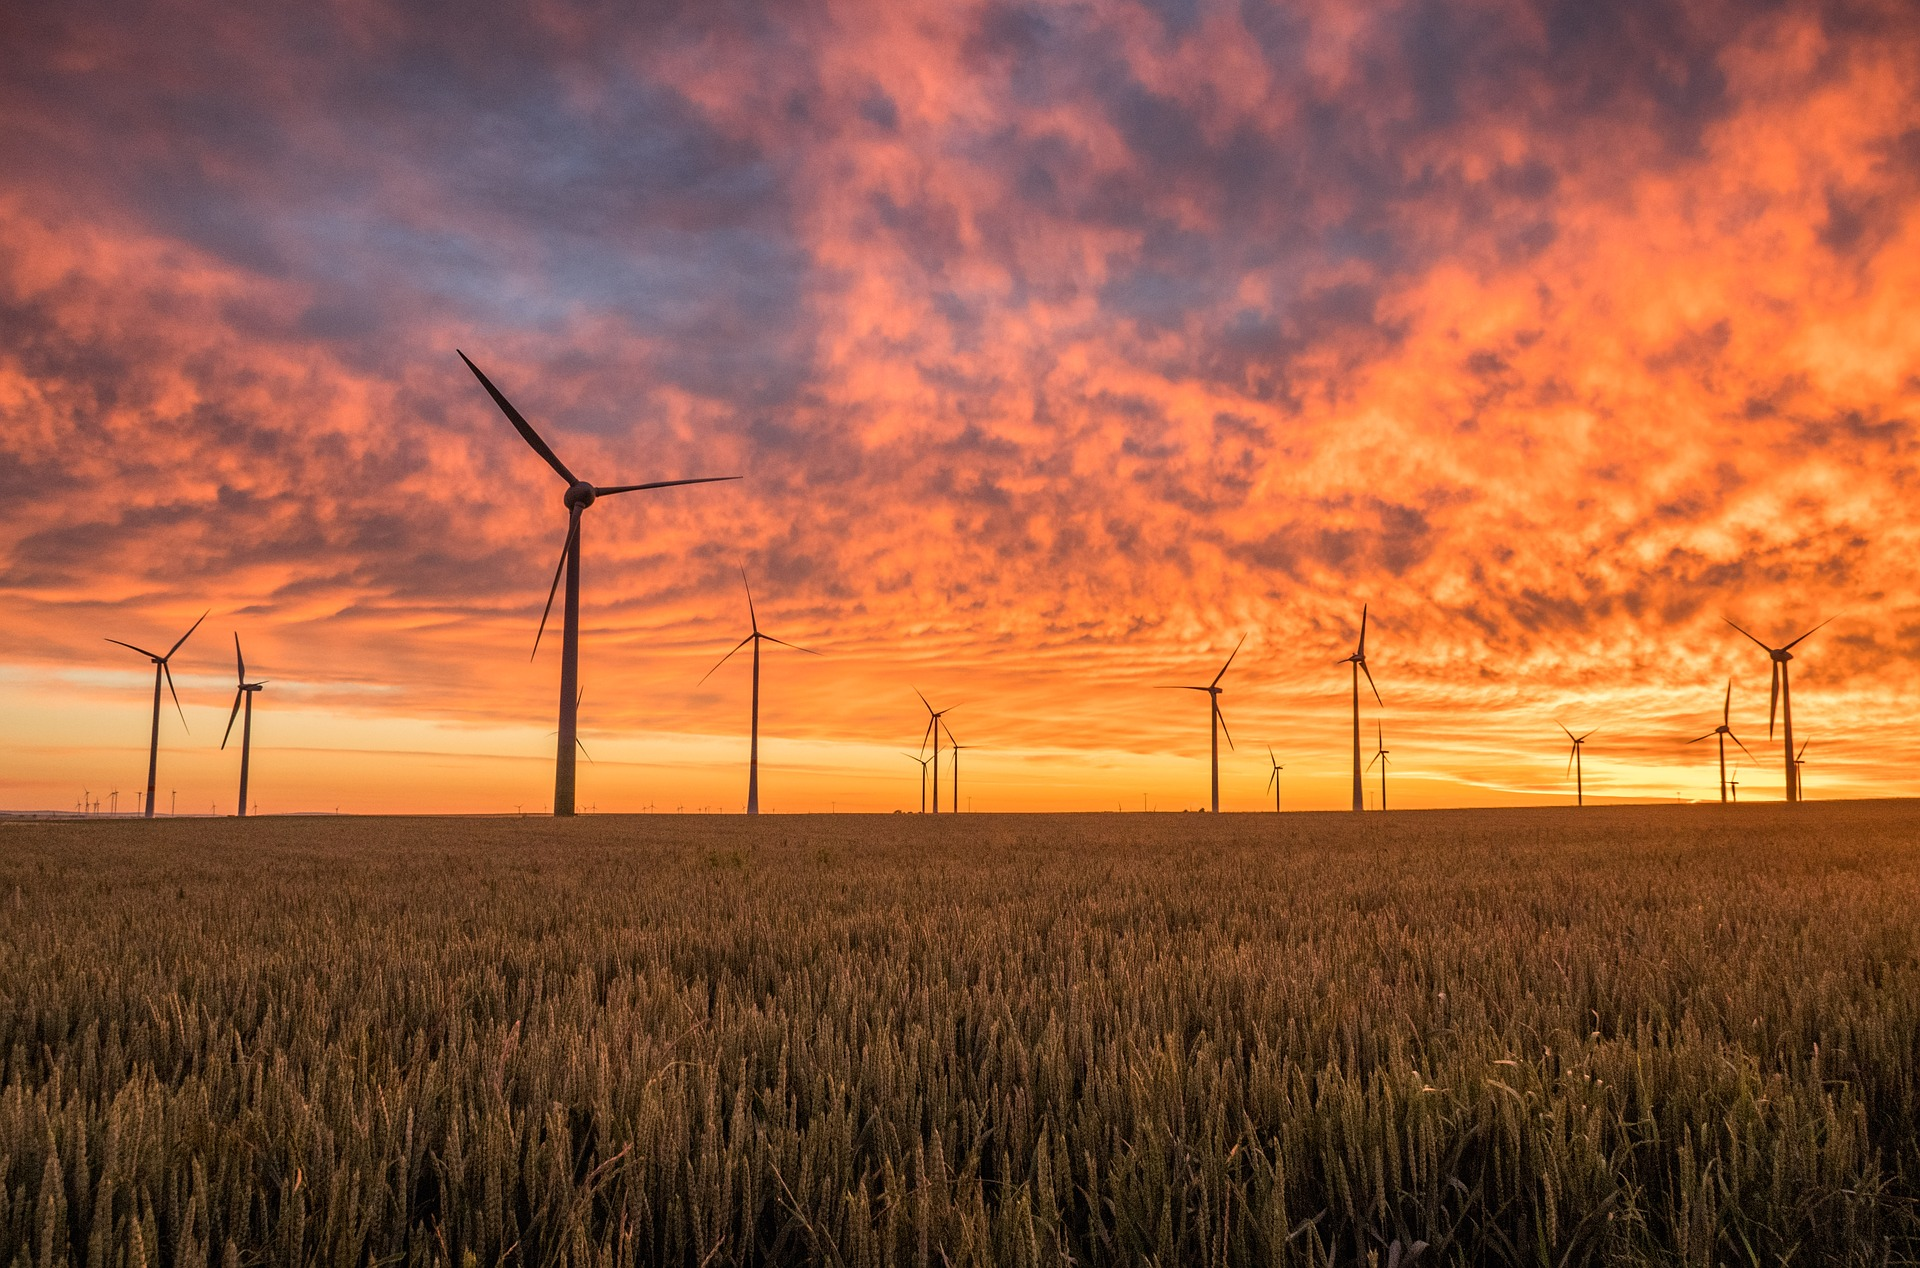 WI Daily News – Poles are one of the biggest supporters of green energy in Central Europe